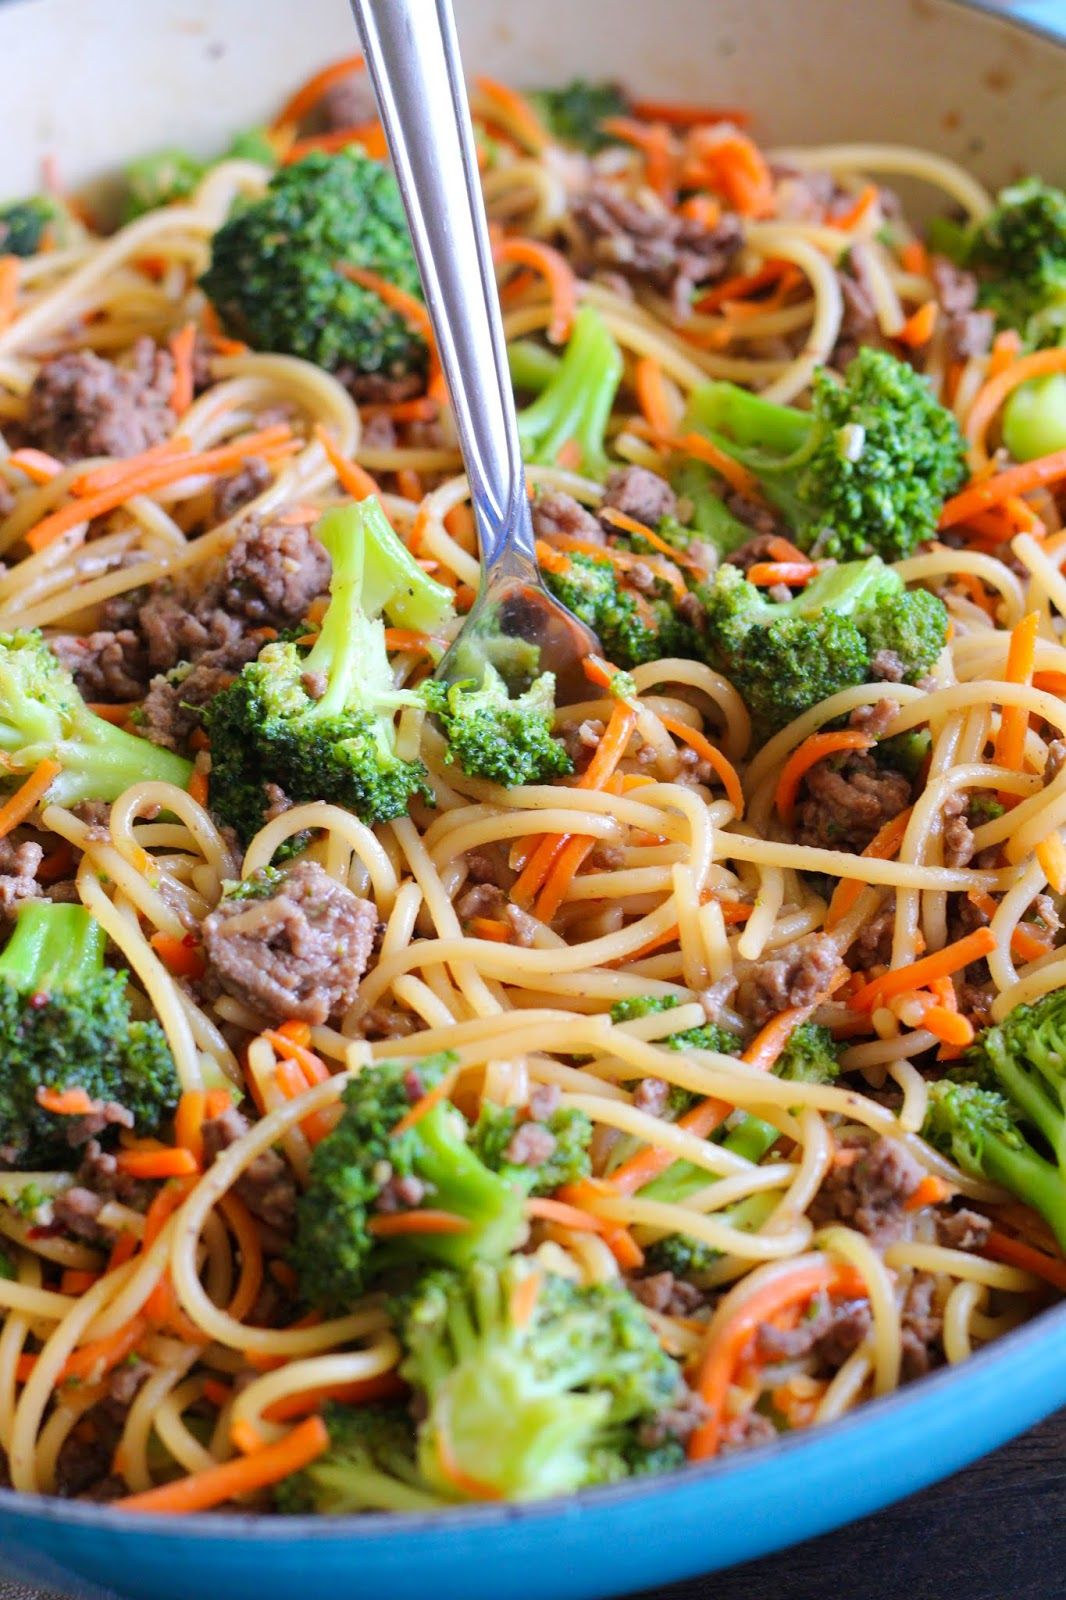 Easy Ground Beef Lo Mein In Under 30 Minutes Dinner With Ground Beef Ground Beef Recipes For Dinner Beef Recipes For Dinner